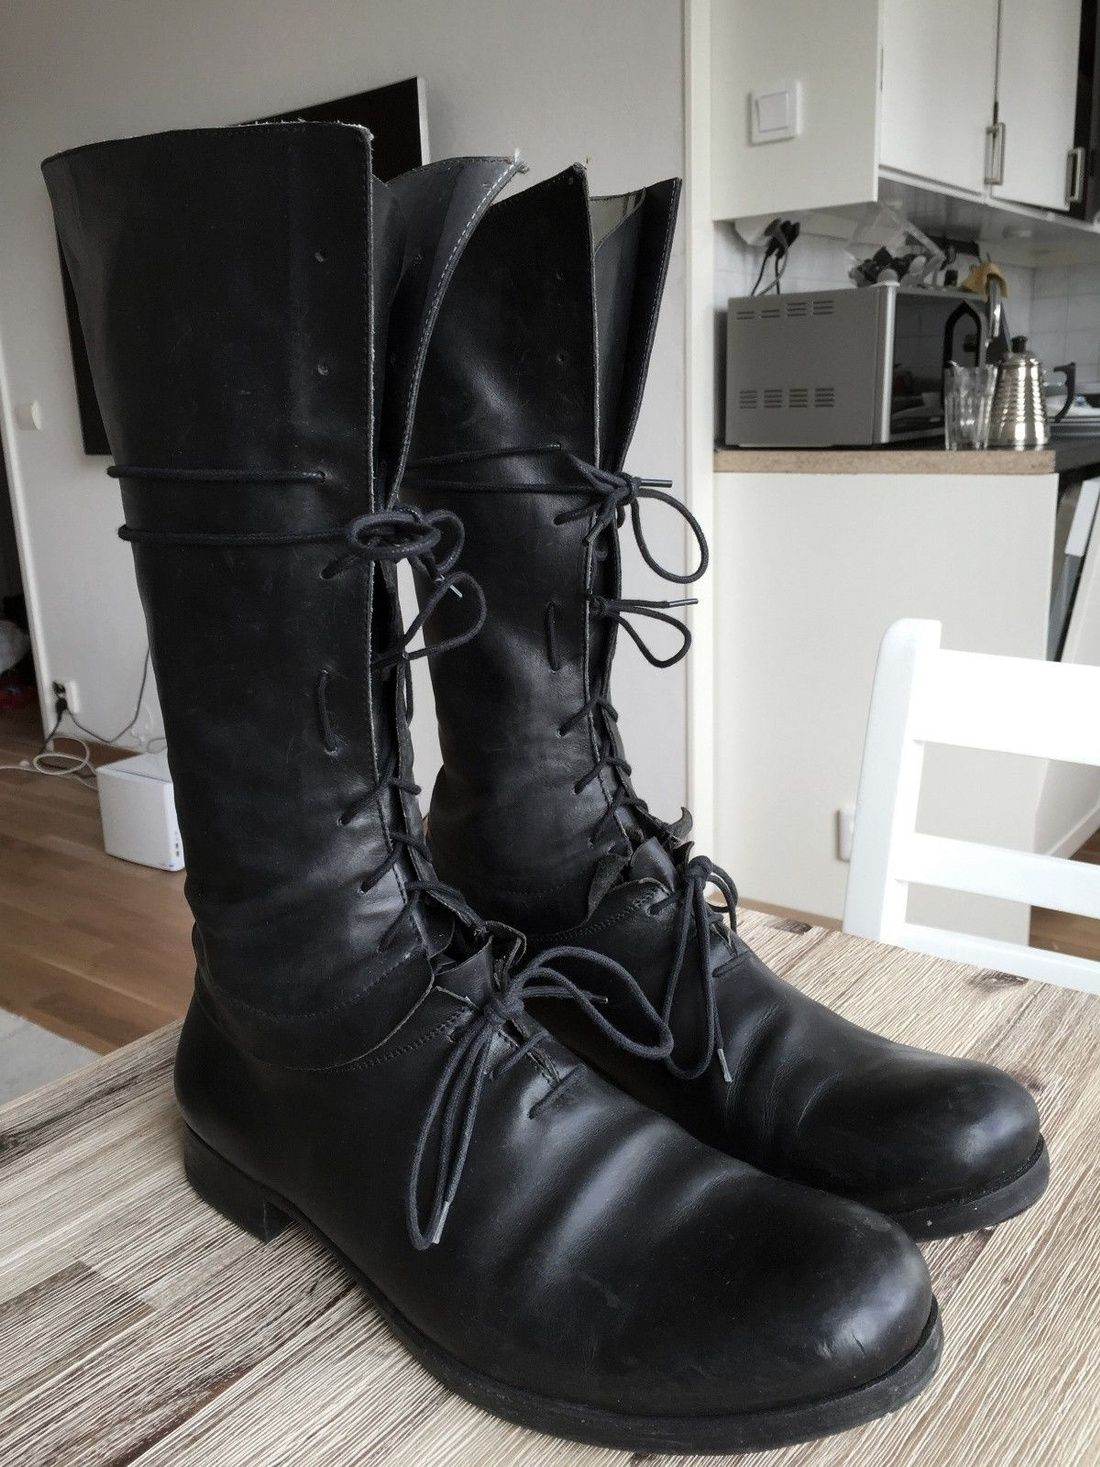 new styles 15fb0 2f9a8 MA+ Shoeboots | 鞋 in 2019 | Boots, Combat boots, Fashion shoes